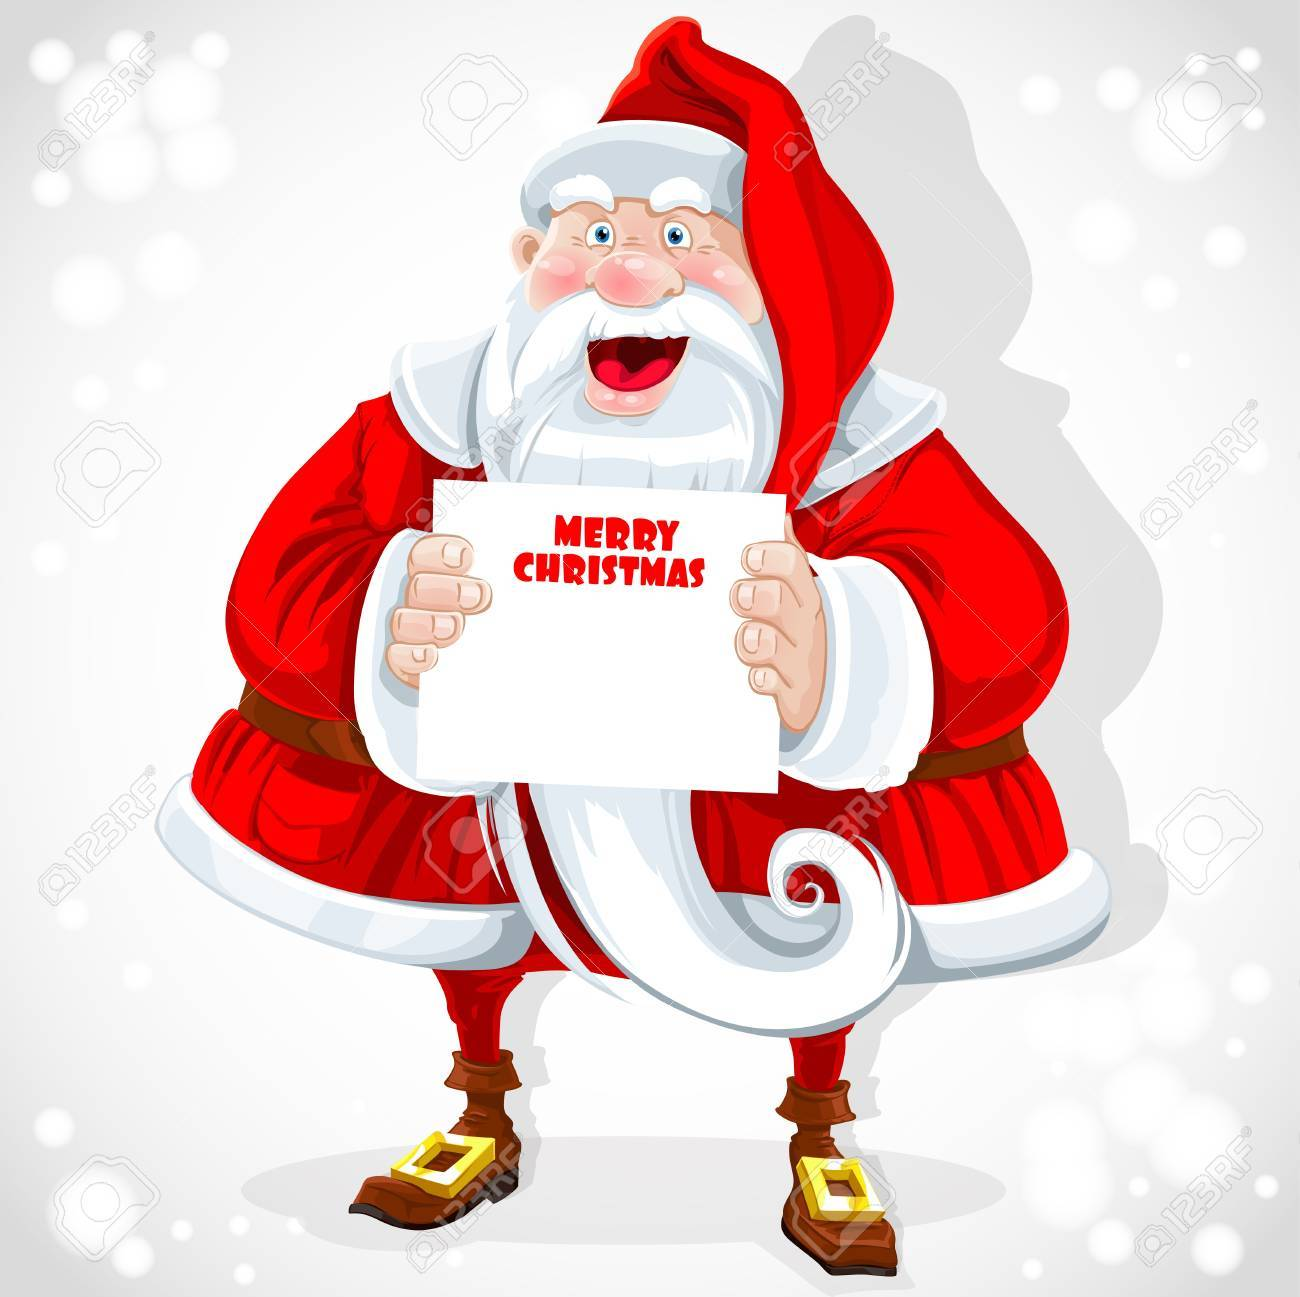 Cute Santa Claus Hold Banner With Christmas Greetings Royalty Free